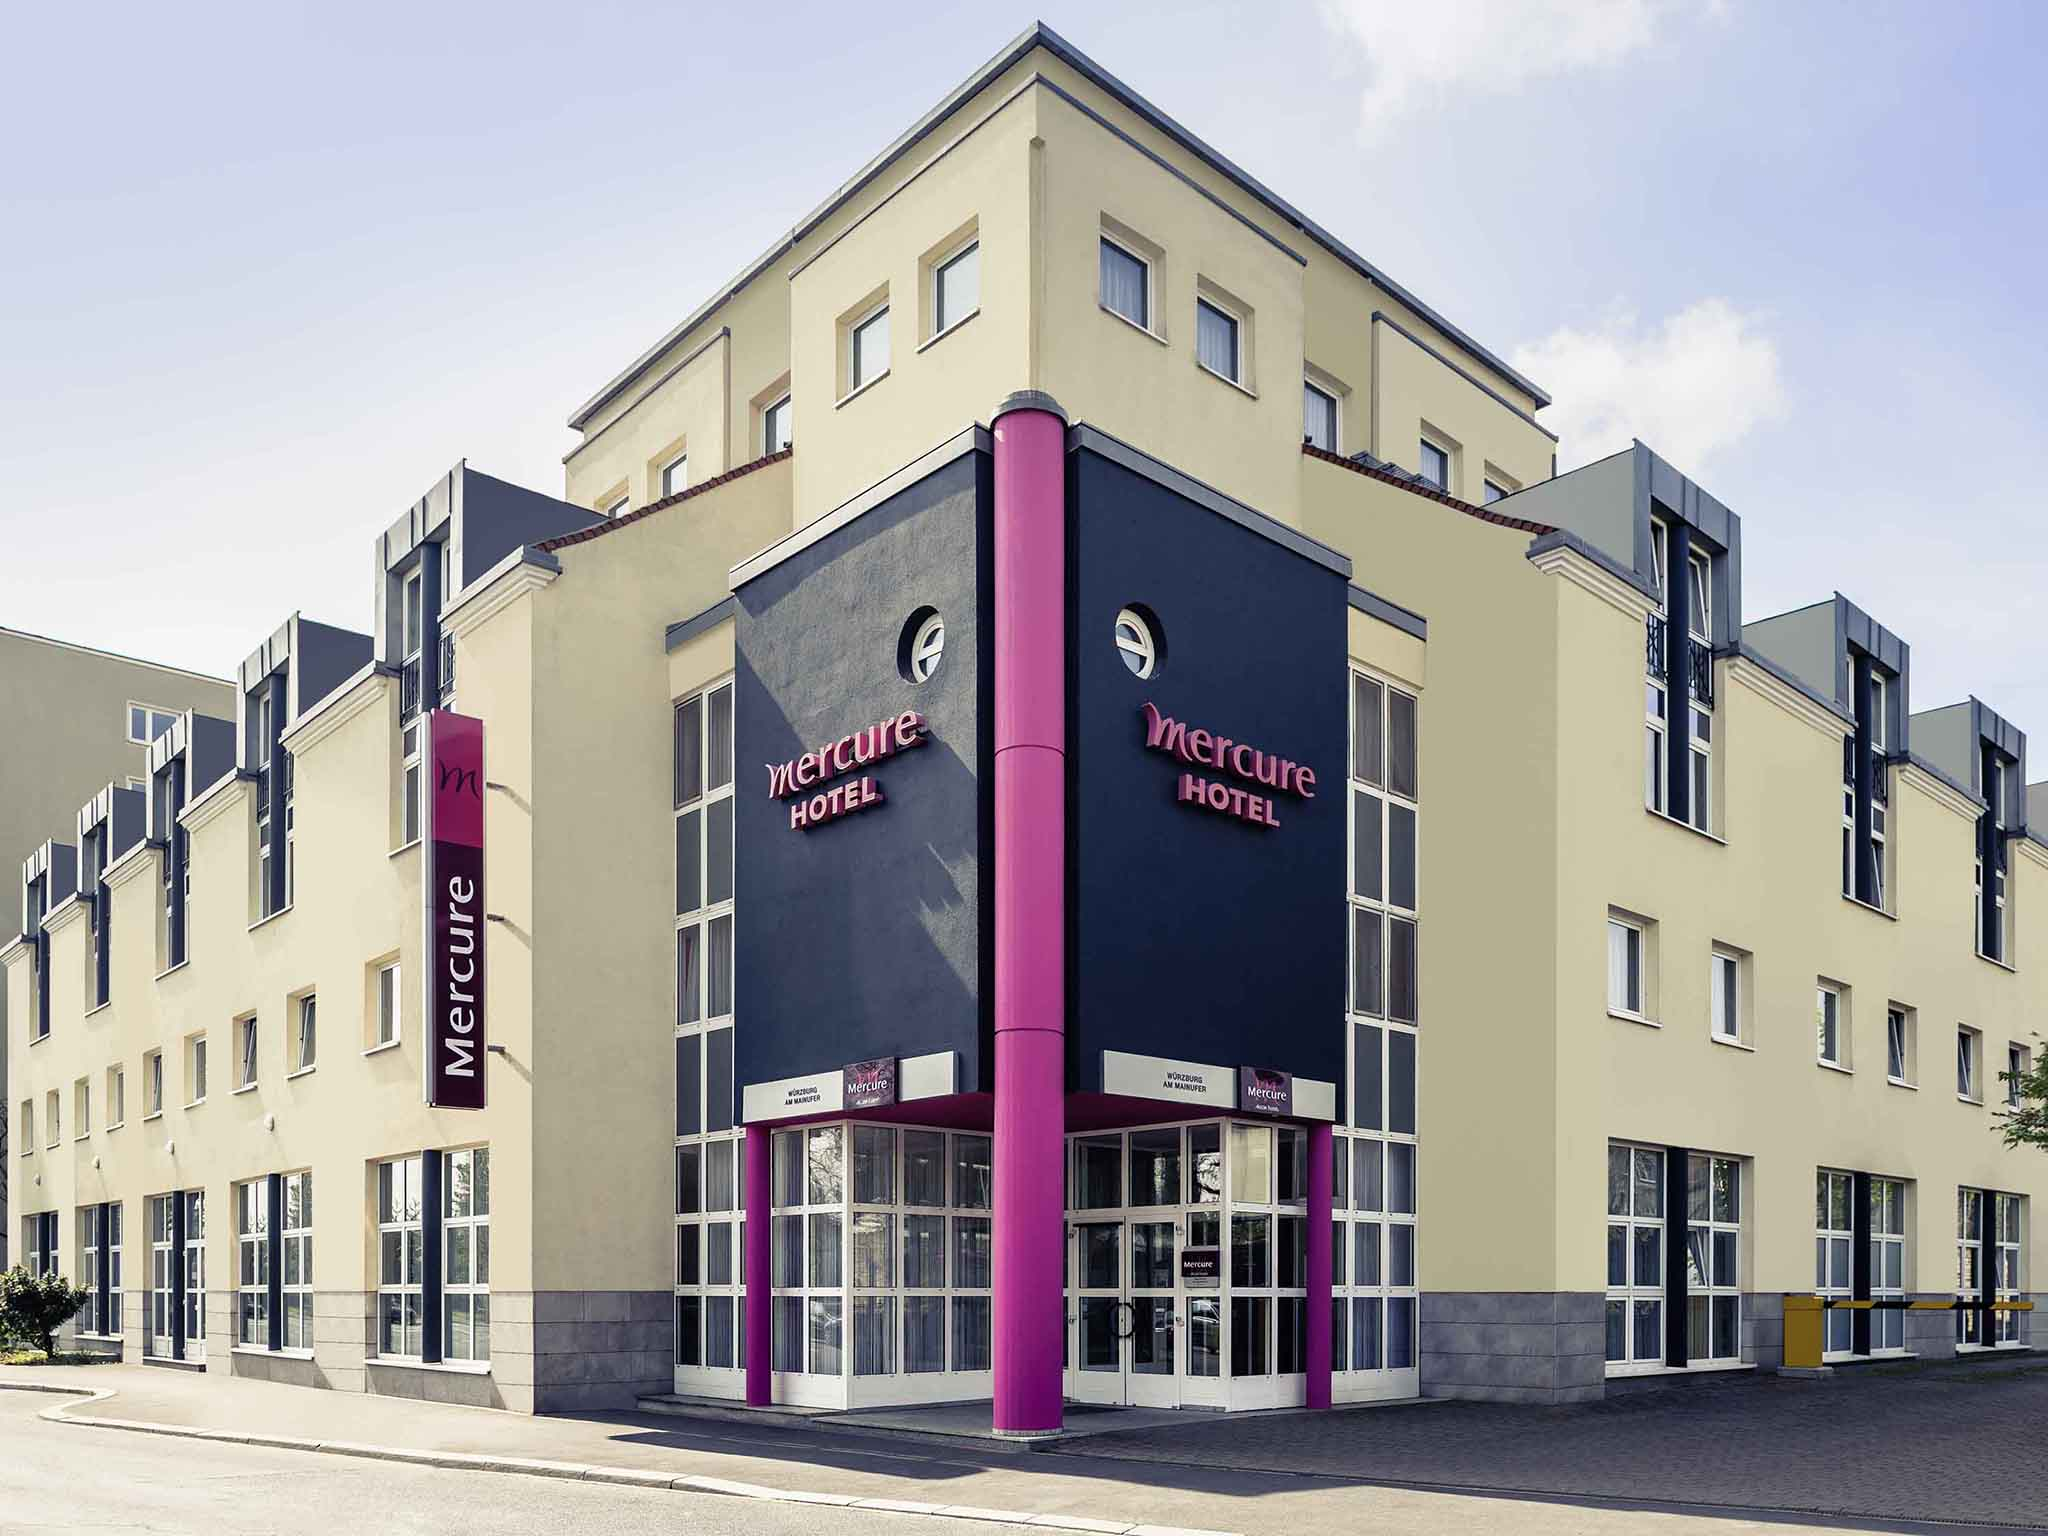 Hotel – Mercure Hotel Wuerzburg am Mainufer